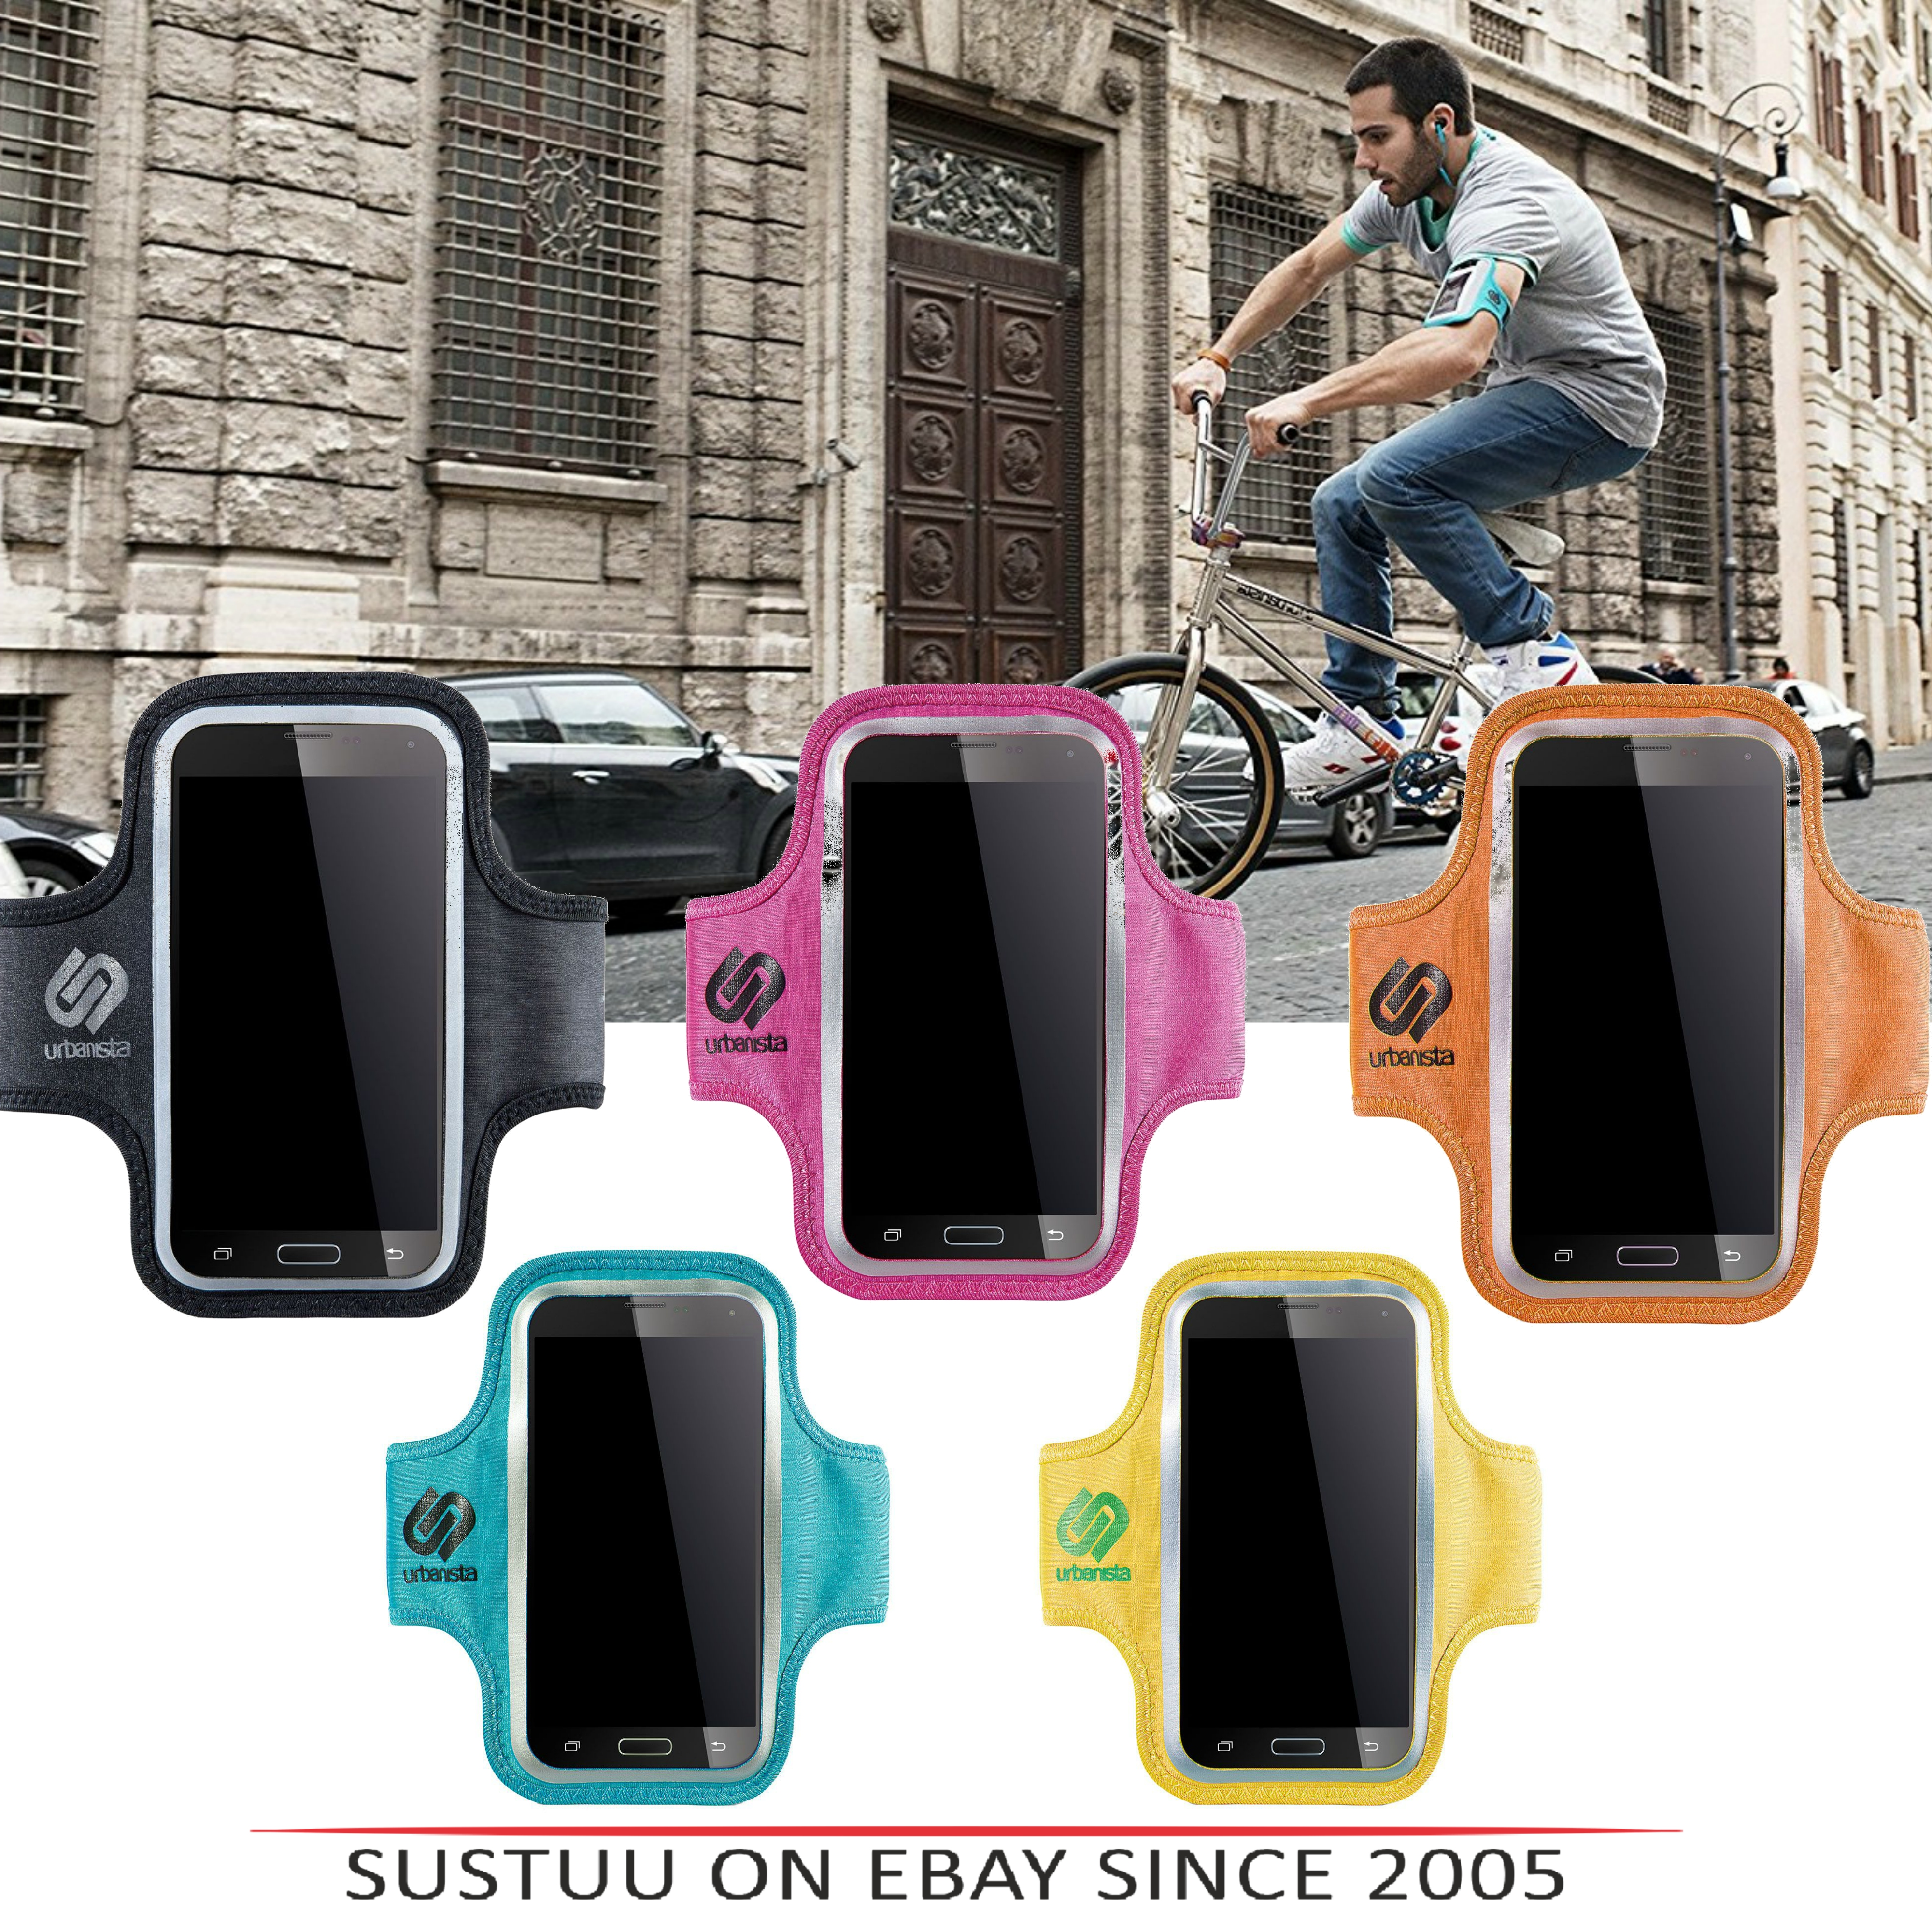 Urbanista Sao Paulo Armband|Water Resistant|Black|Pink|Yellow|Orange|Turquoise